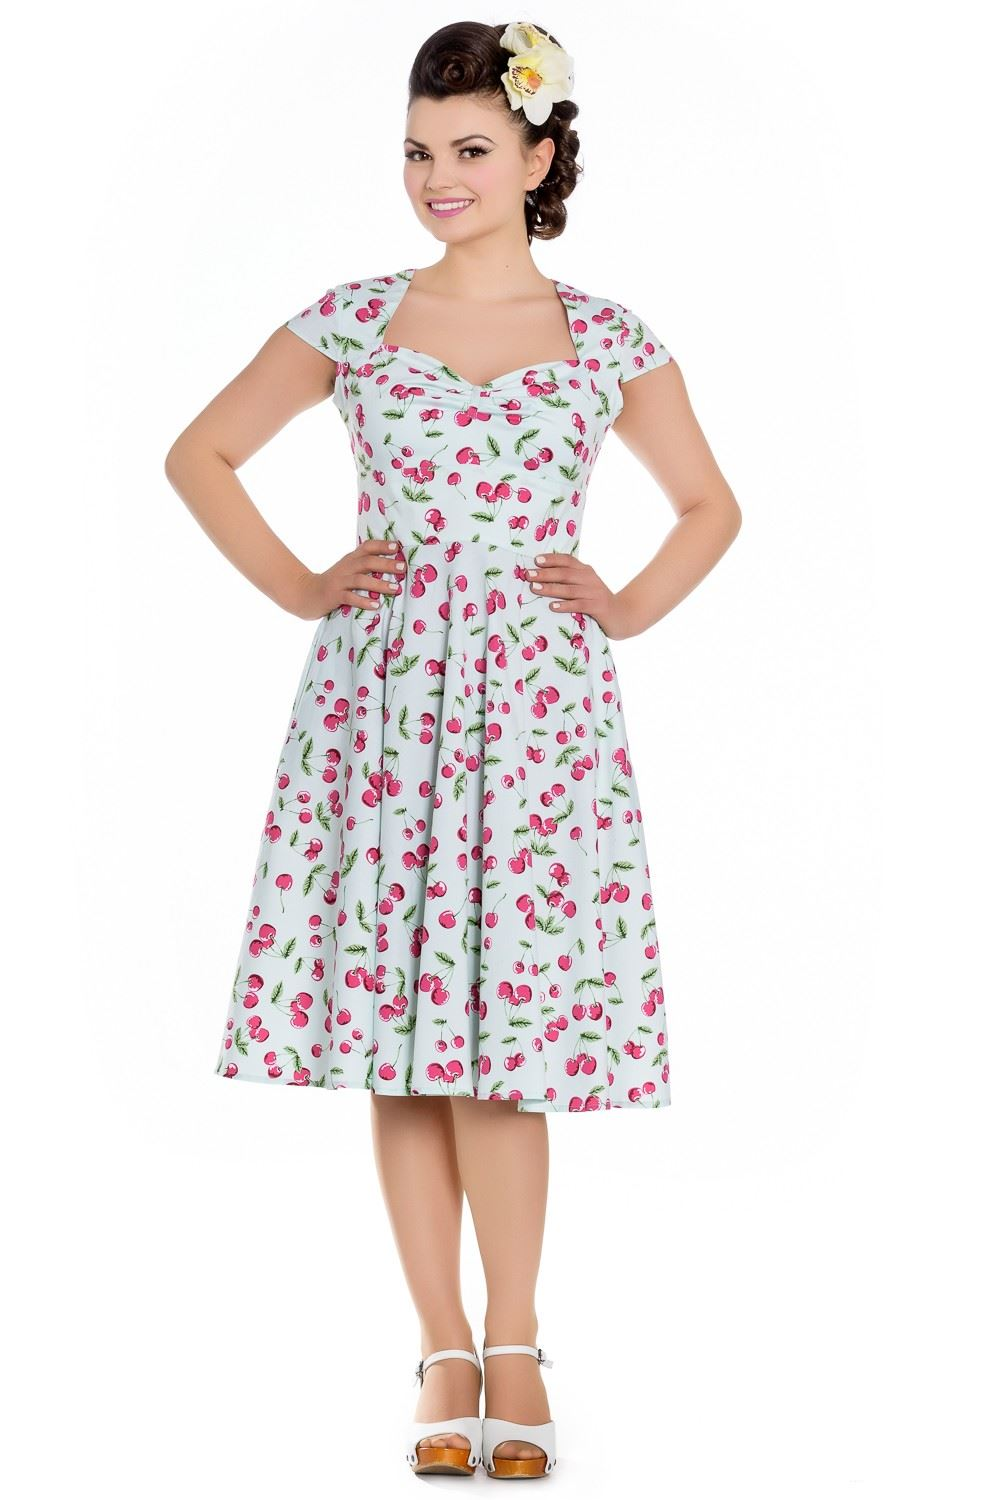 Hell-Bunny-avril-Annees-50-Vintage-Swing-Pin-Up-CHERRY-Robe-Plus-Taille-XS-4XL